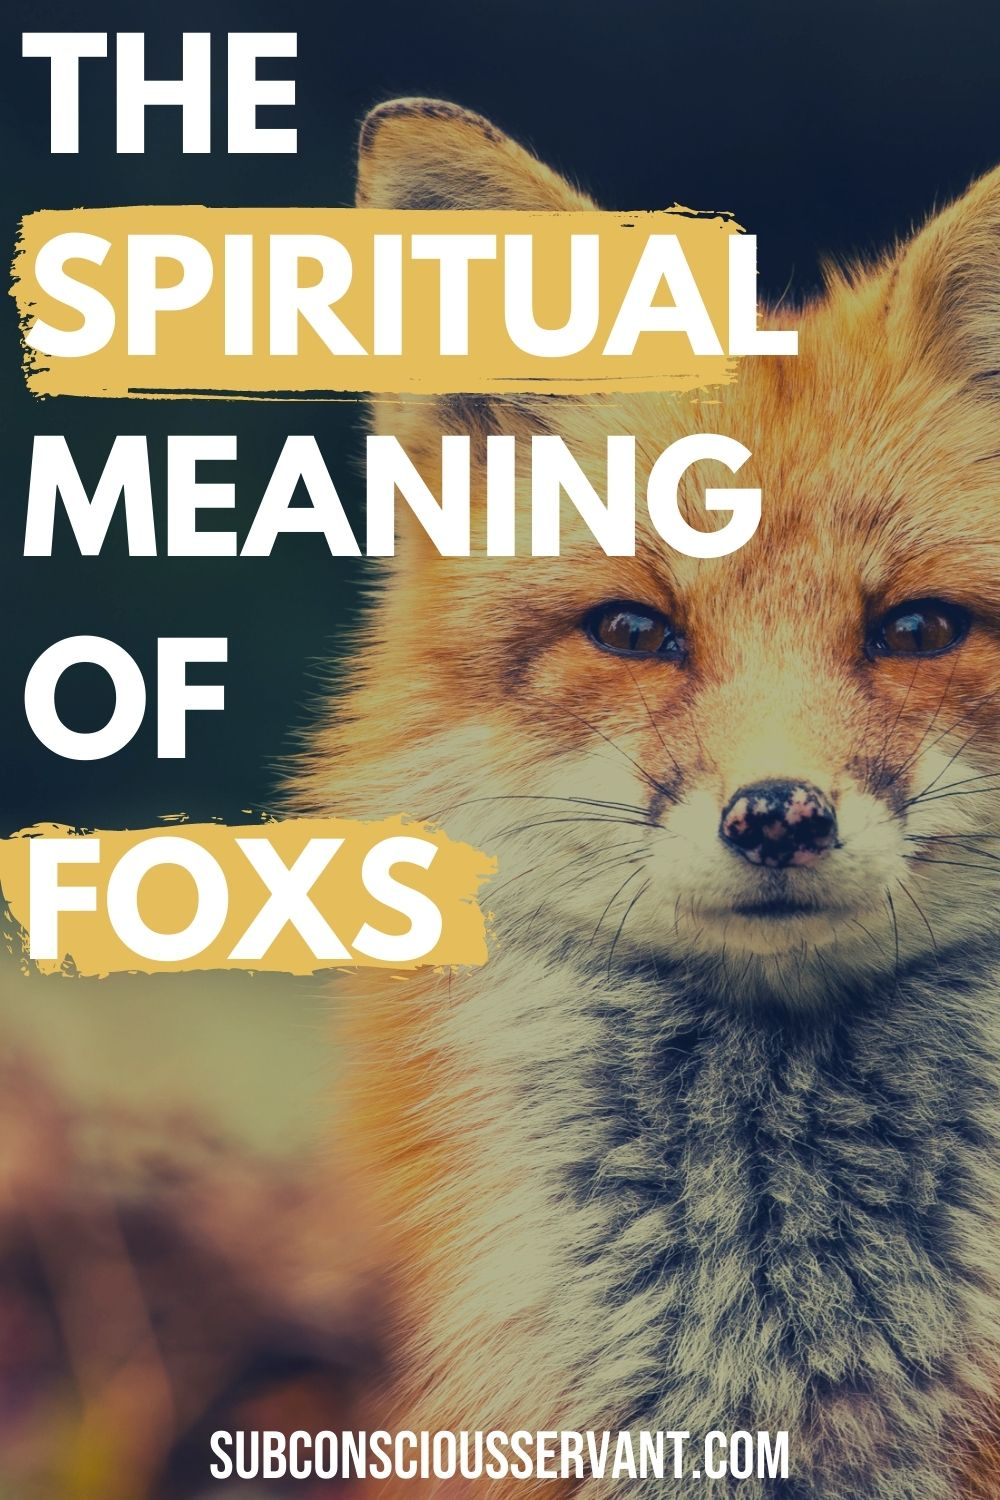 Fox Spiritual Meaning - The Amazing Symbolism Of Seeing A Fox